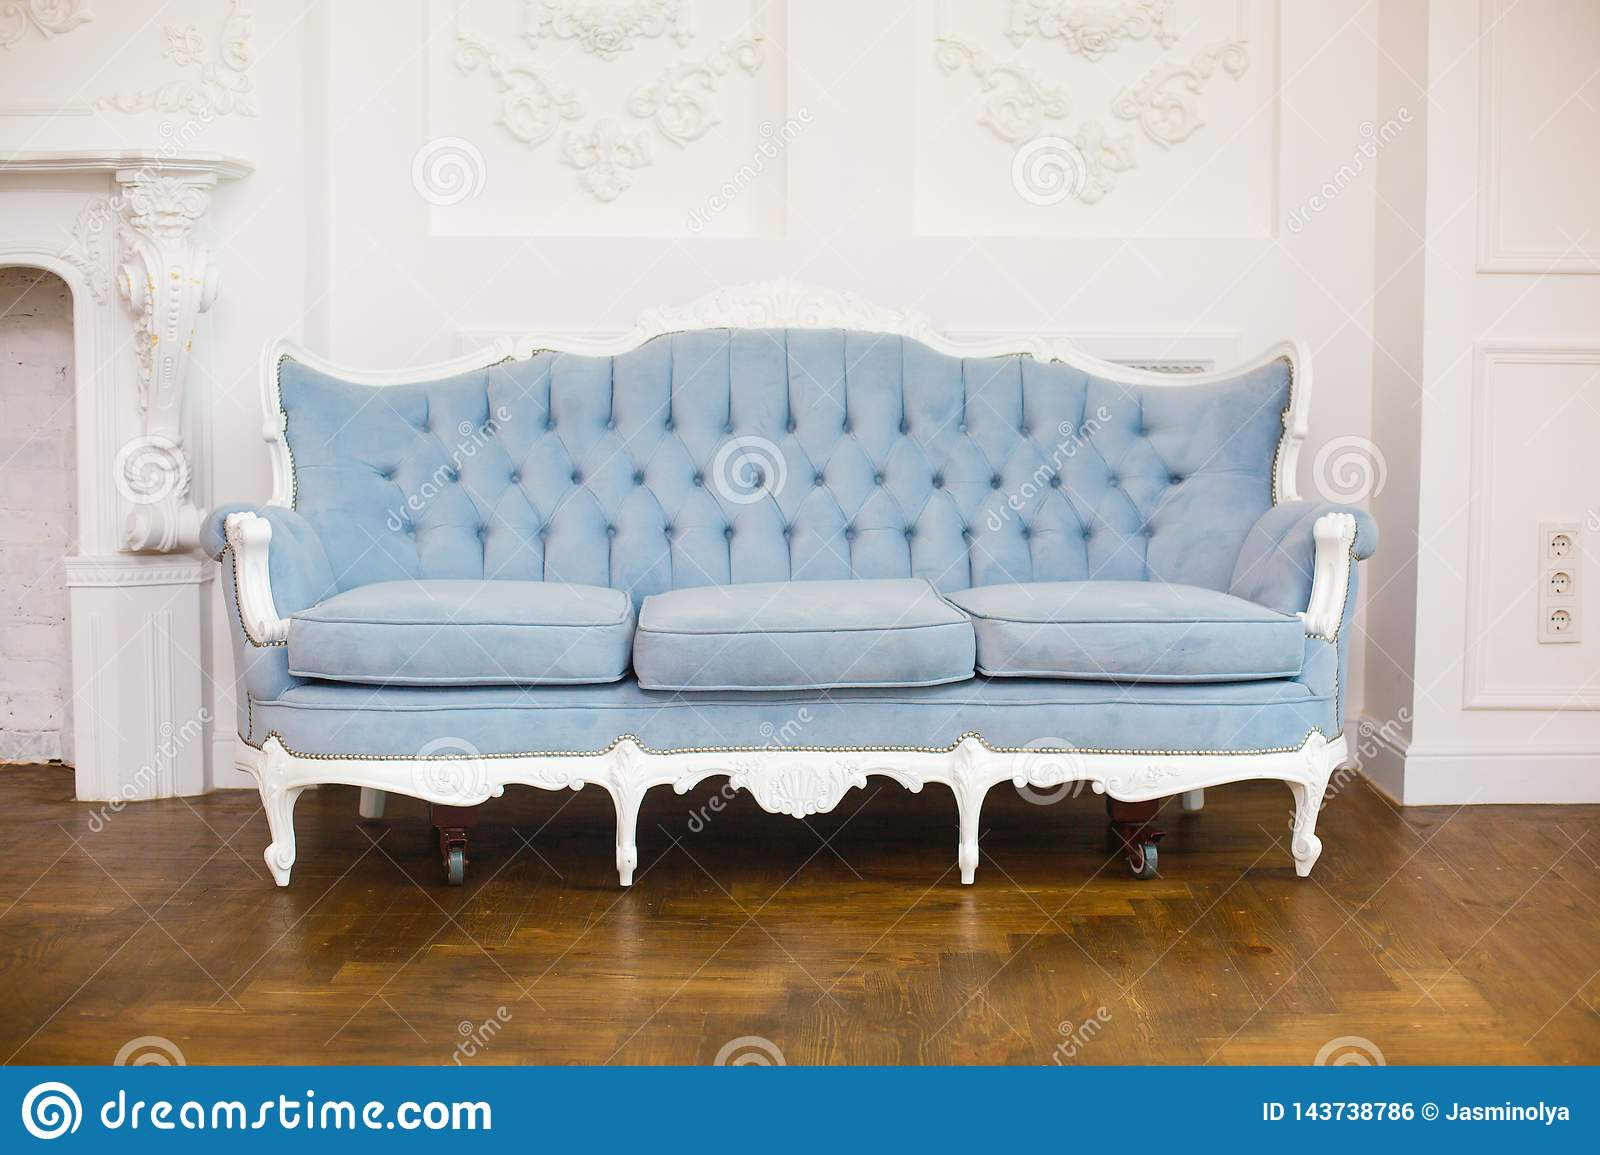 Excellent Light Classic Royal Interior With Blue Soft Sofa With Fabric Pdpeps Interior Chair Design Pdpepsorg